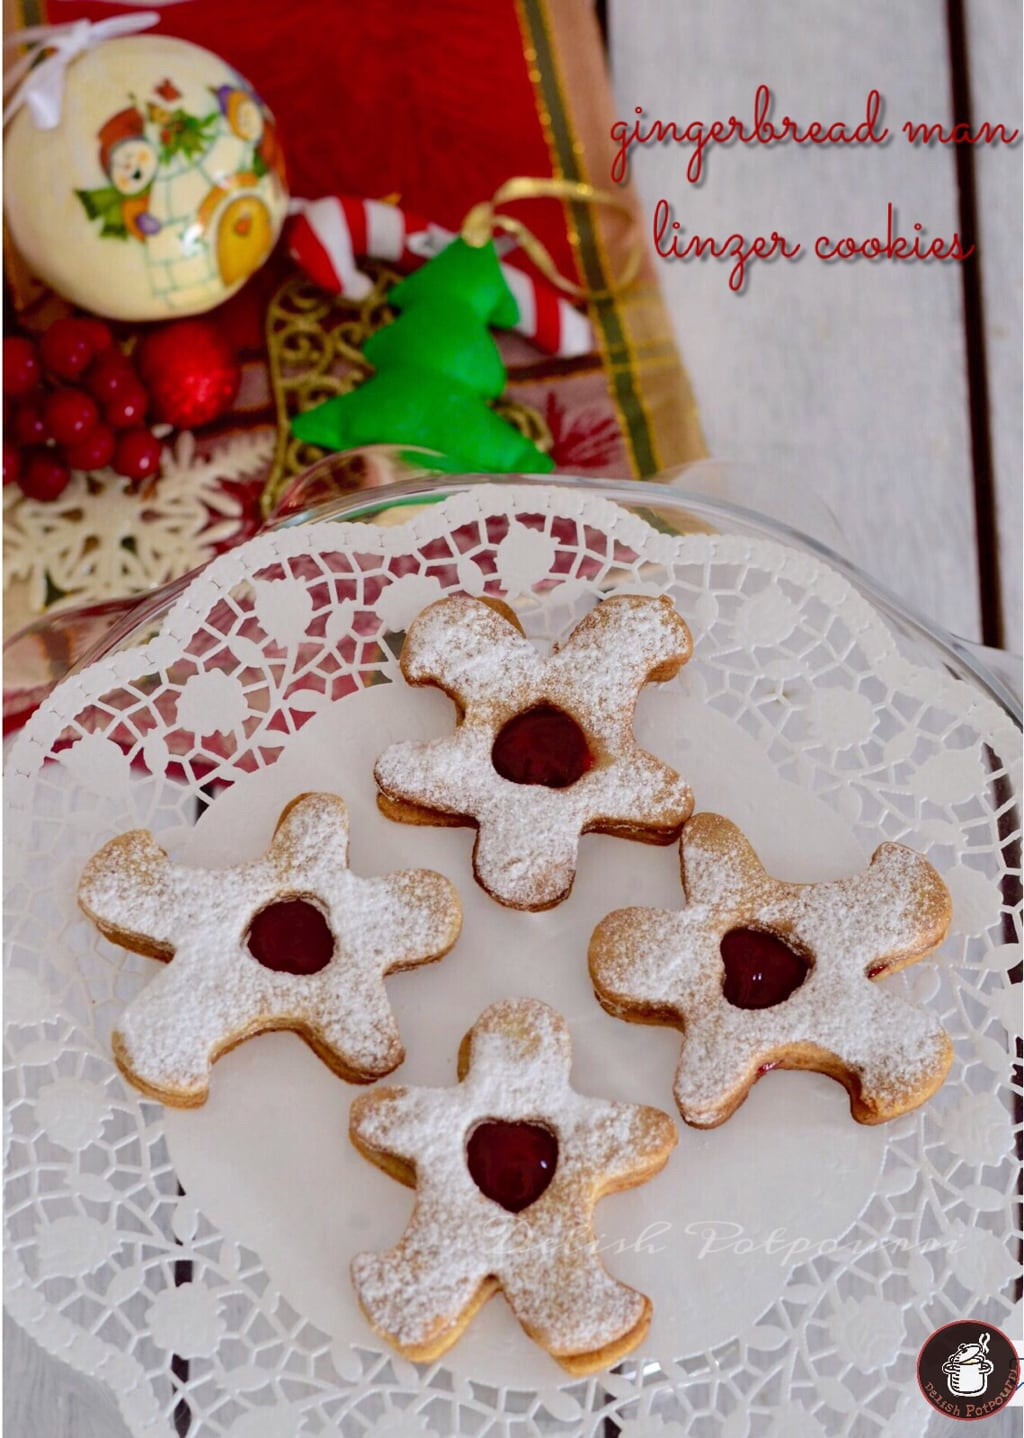 Gingerbread Man Linzer Cookies